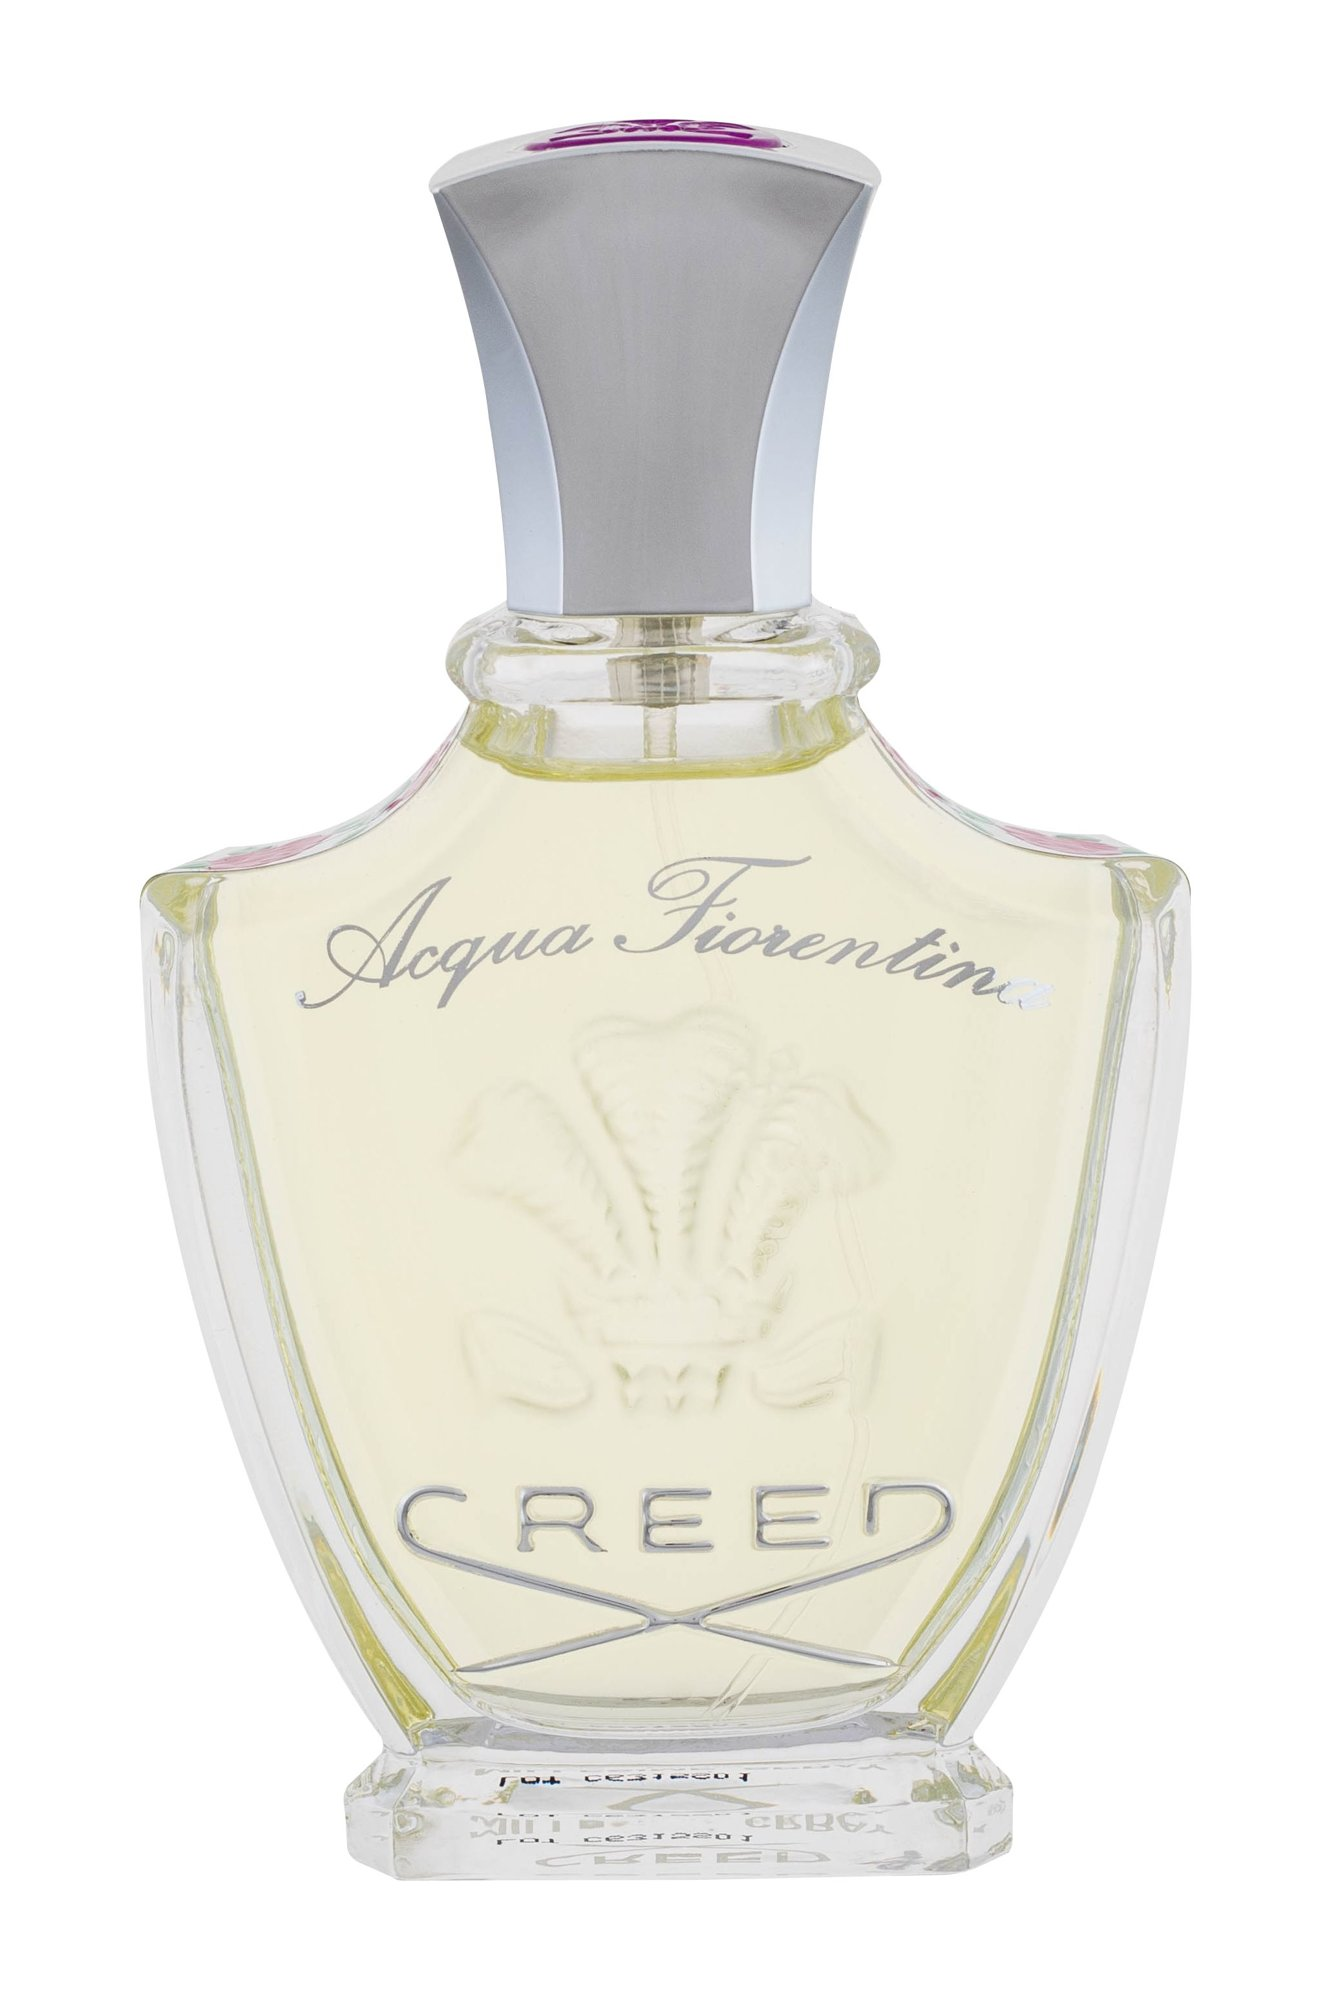 Creed Acqua Fiorentina Millesime 75ml